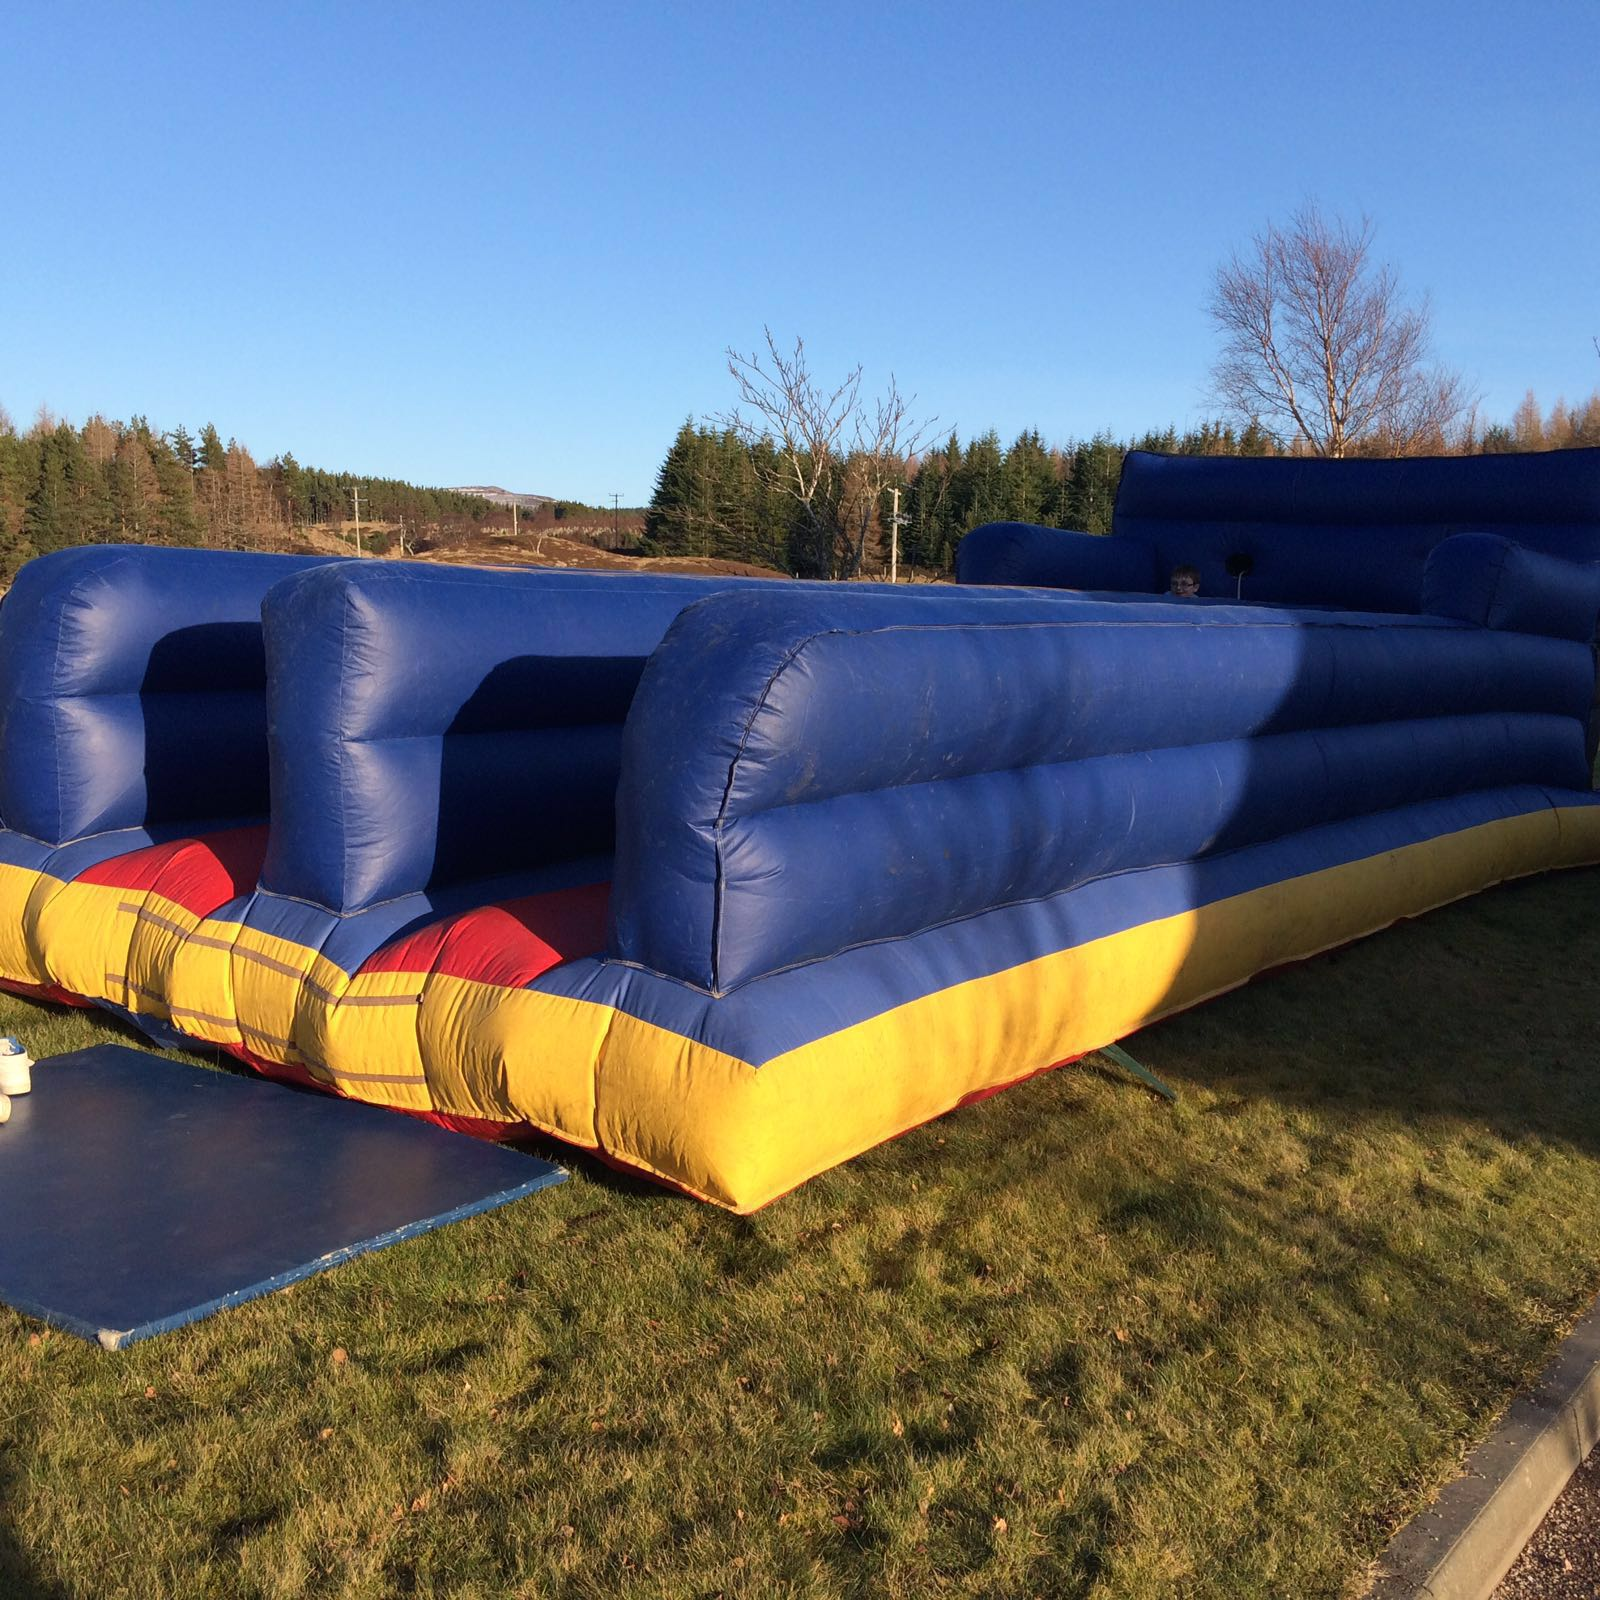 Children's play inflatables